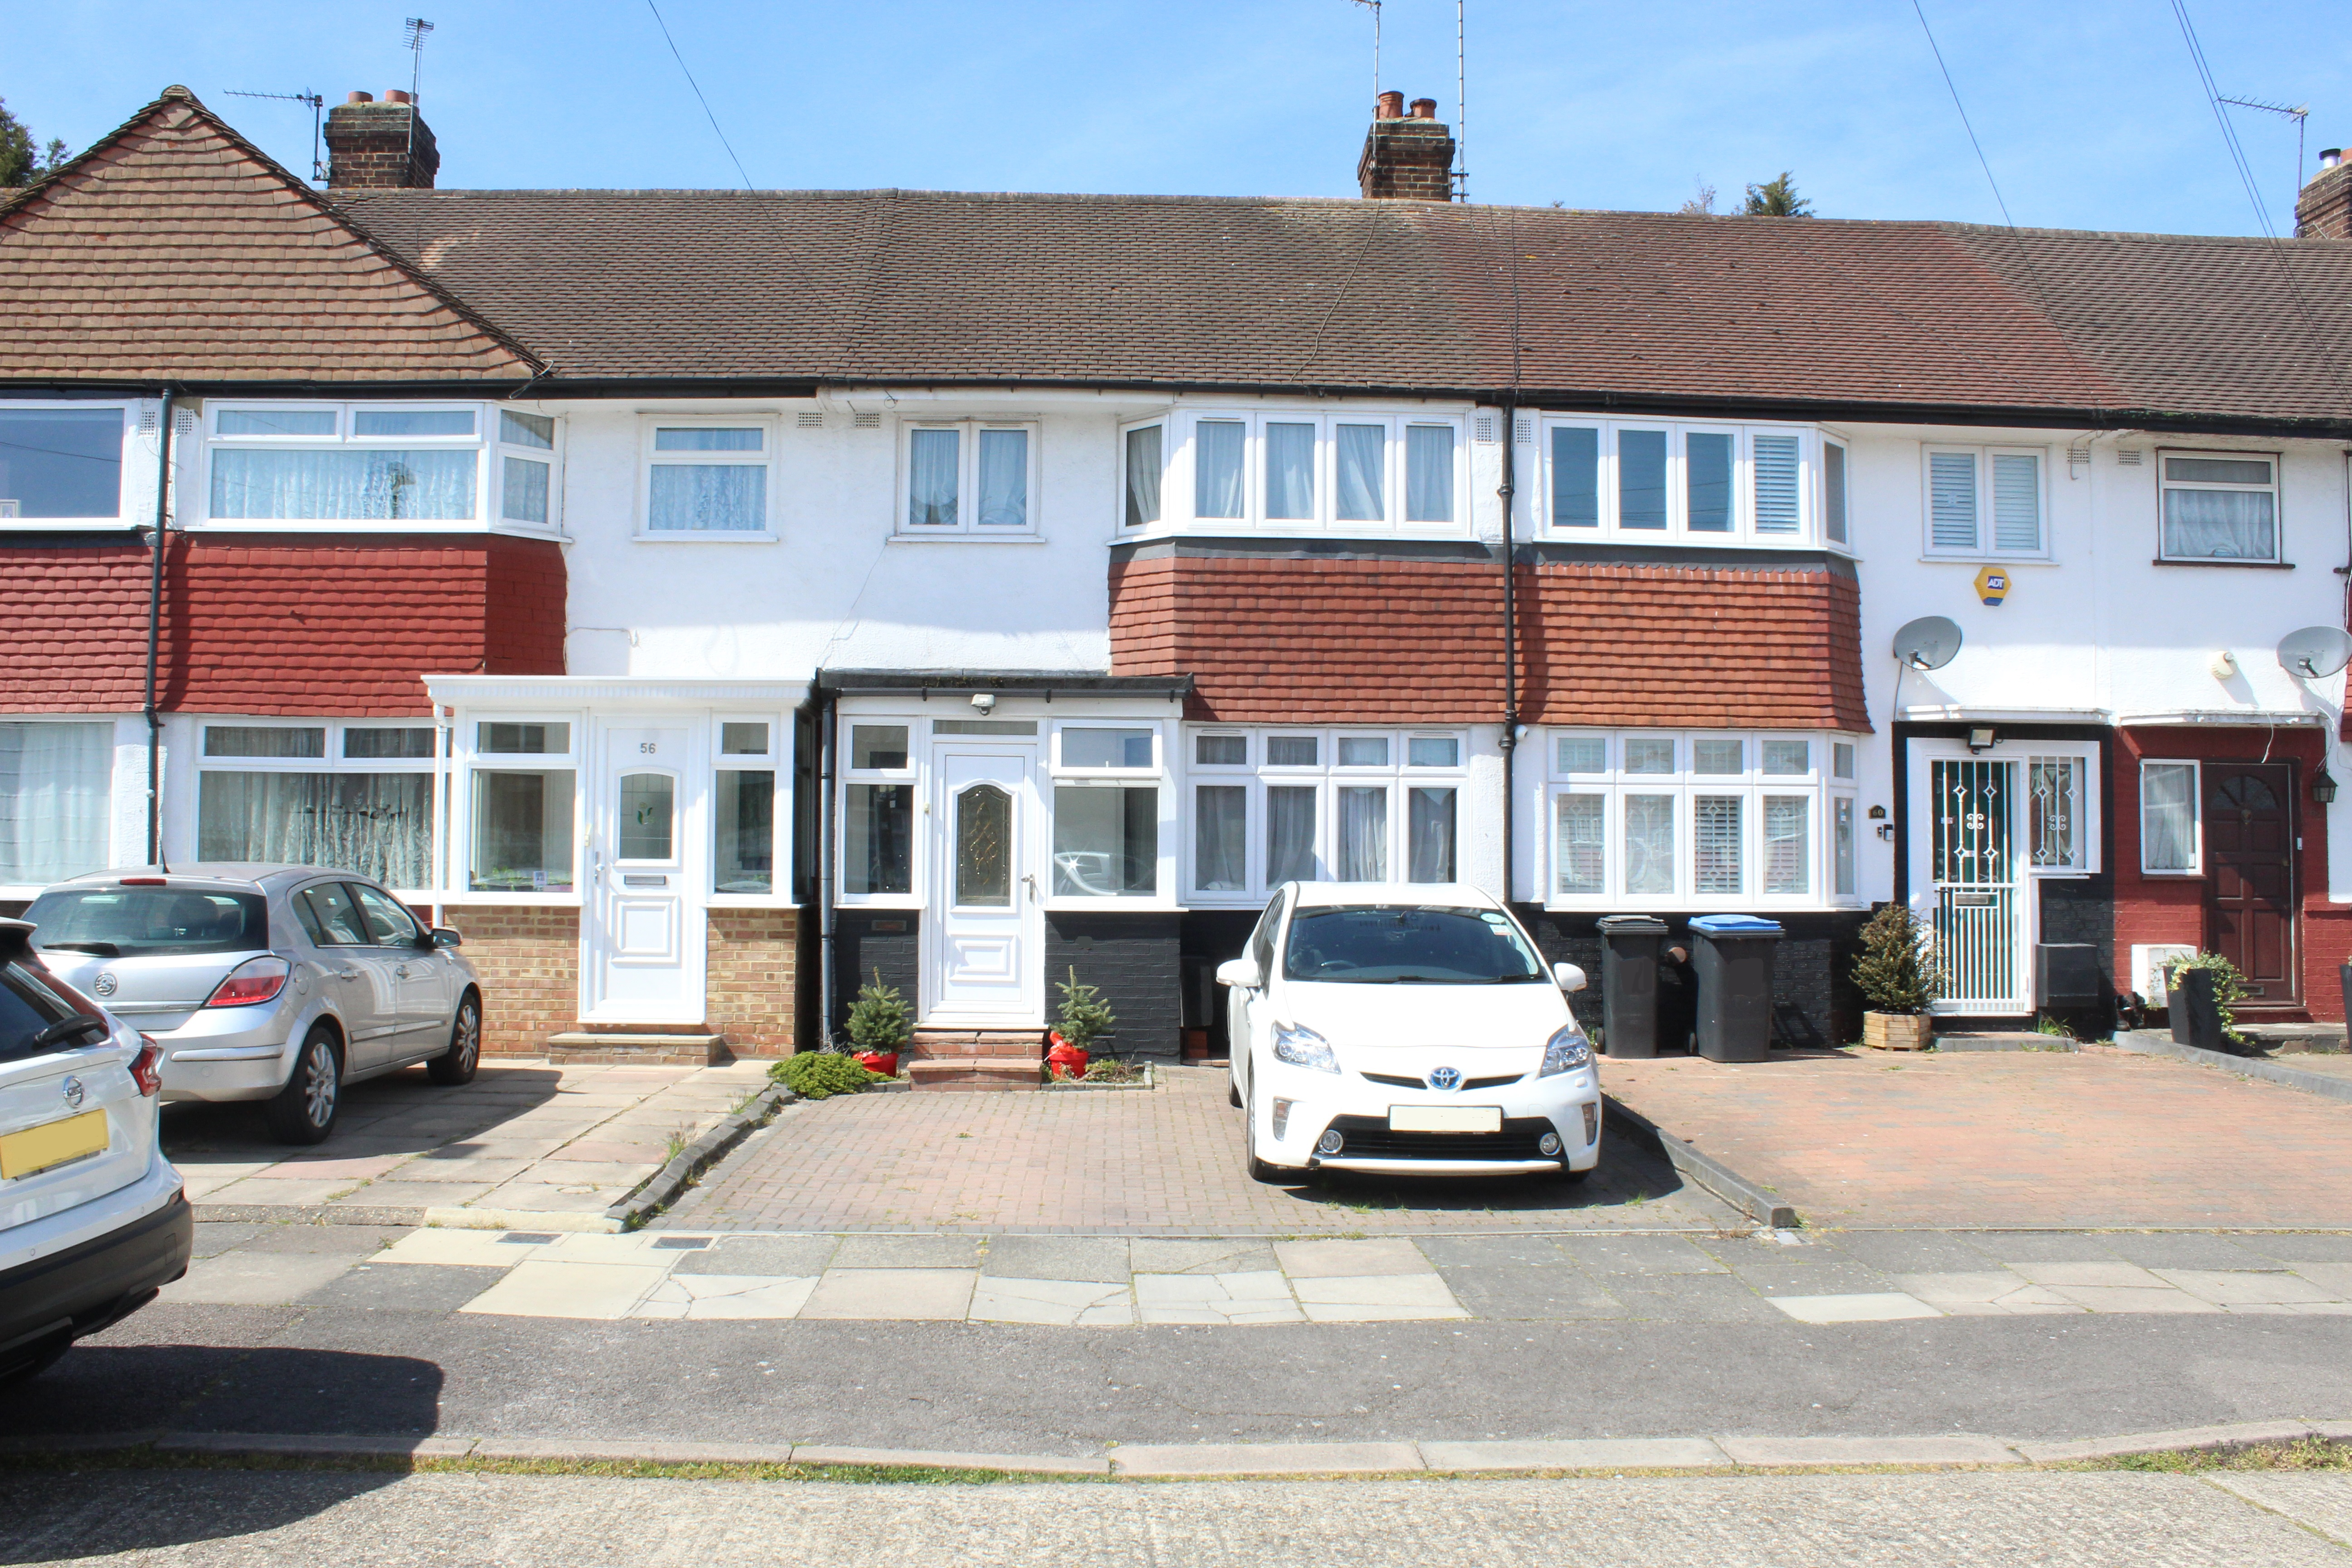 customer_1/branch_2/client_45647/sale_property/IMG_0167_1619450292.jpeg